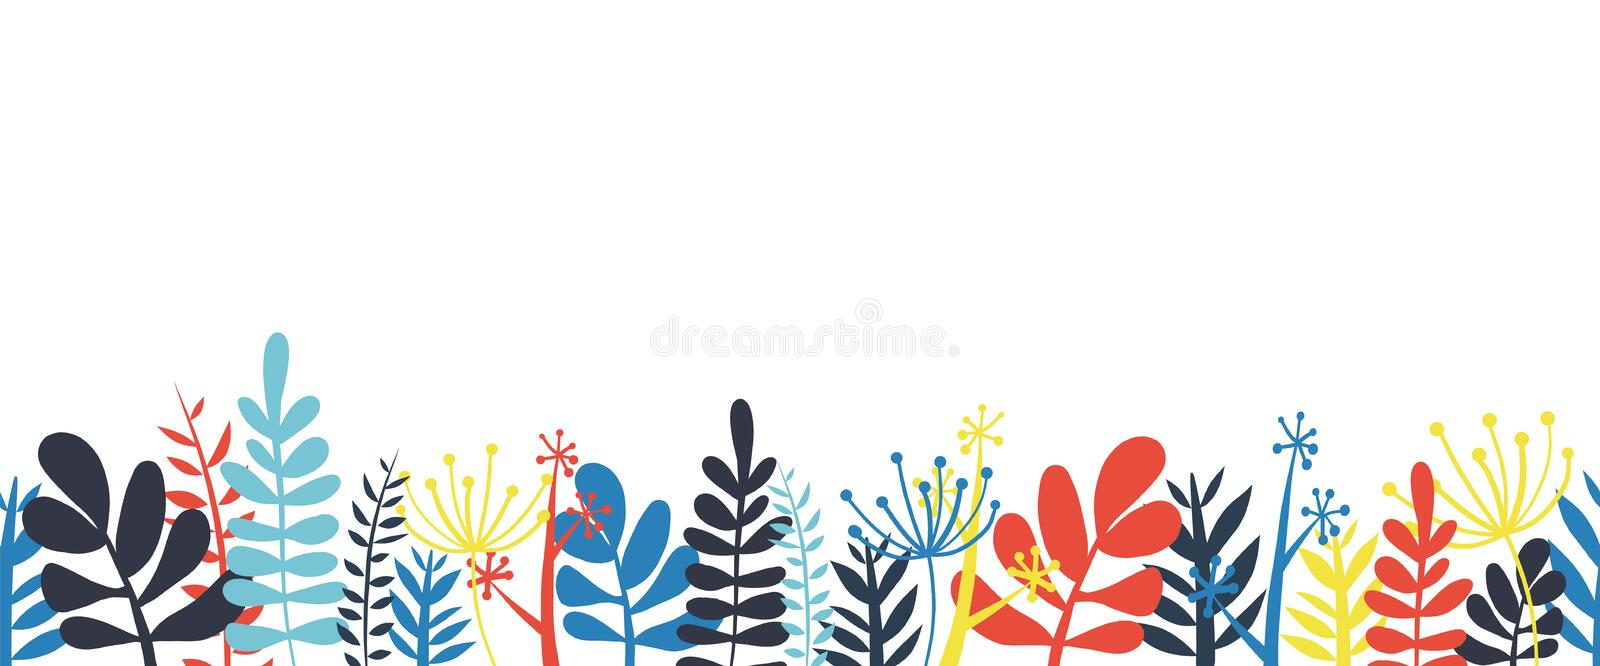 Abstract leaves border frame bottom horizontal seamless vector illustration. Abstract flowers, leaves and stems stock illustration